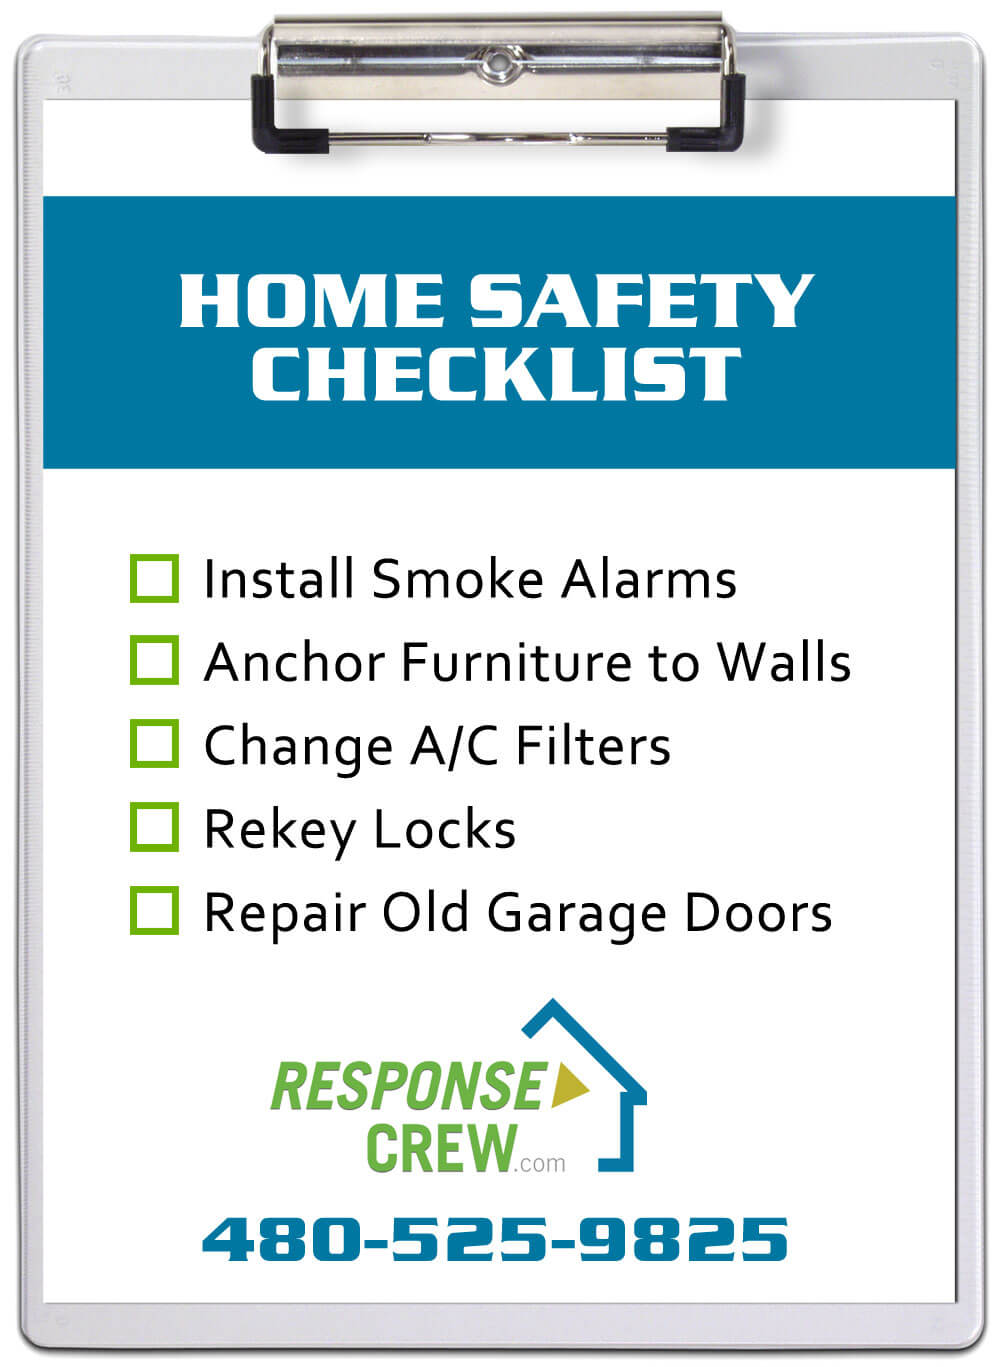 home safety services Response Crew helps customer with